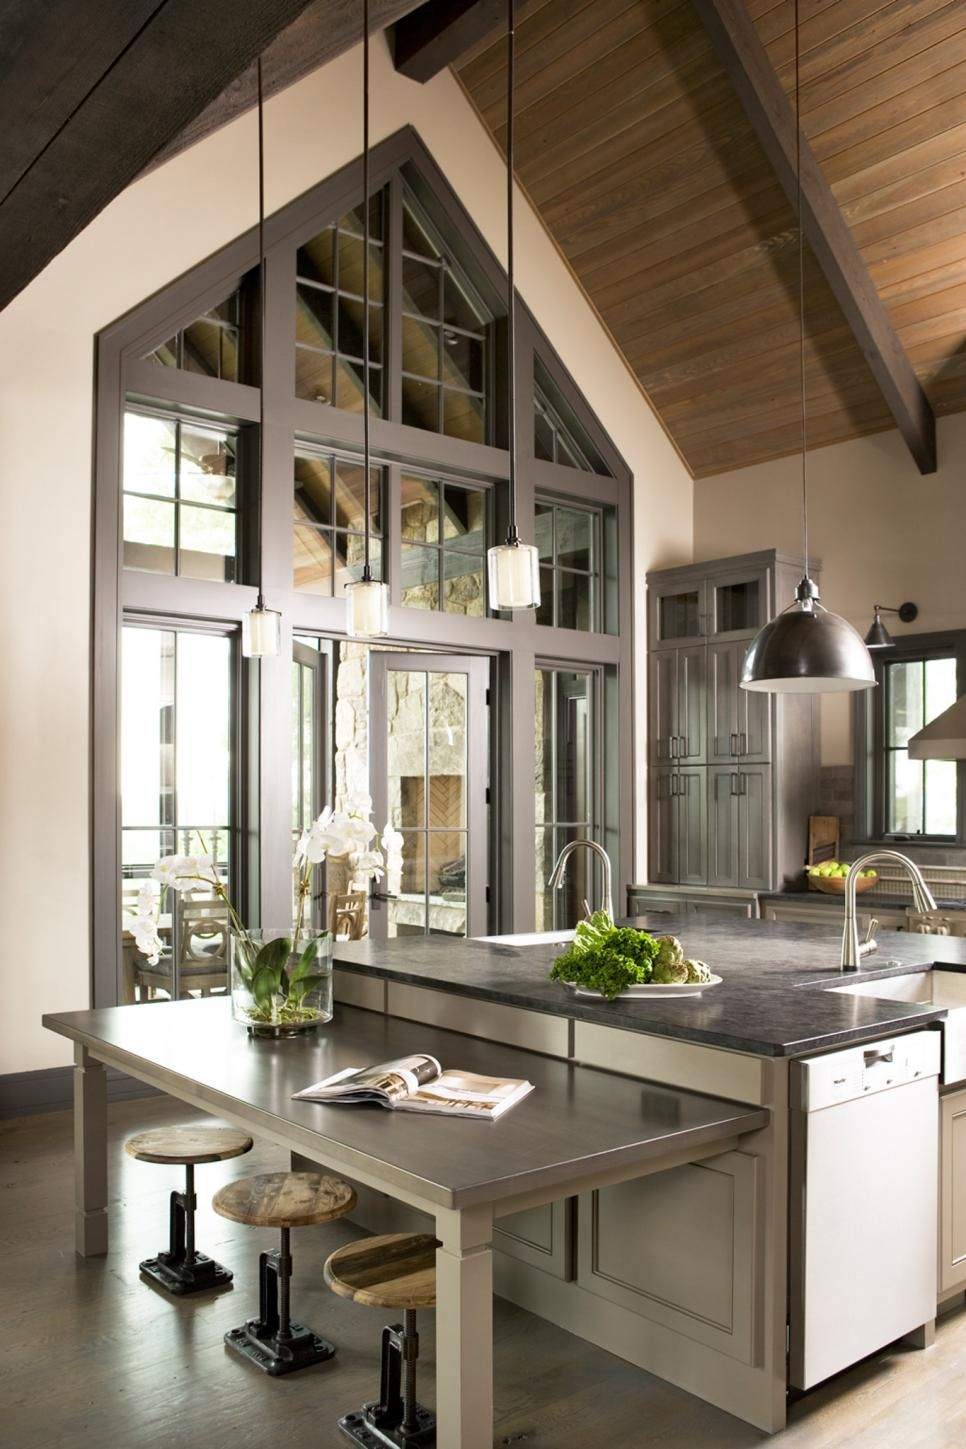 Family cooking kitchen remodel nature inspired hgtv and